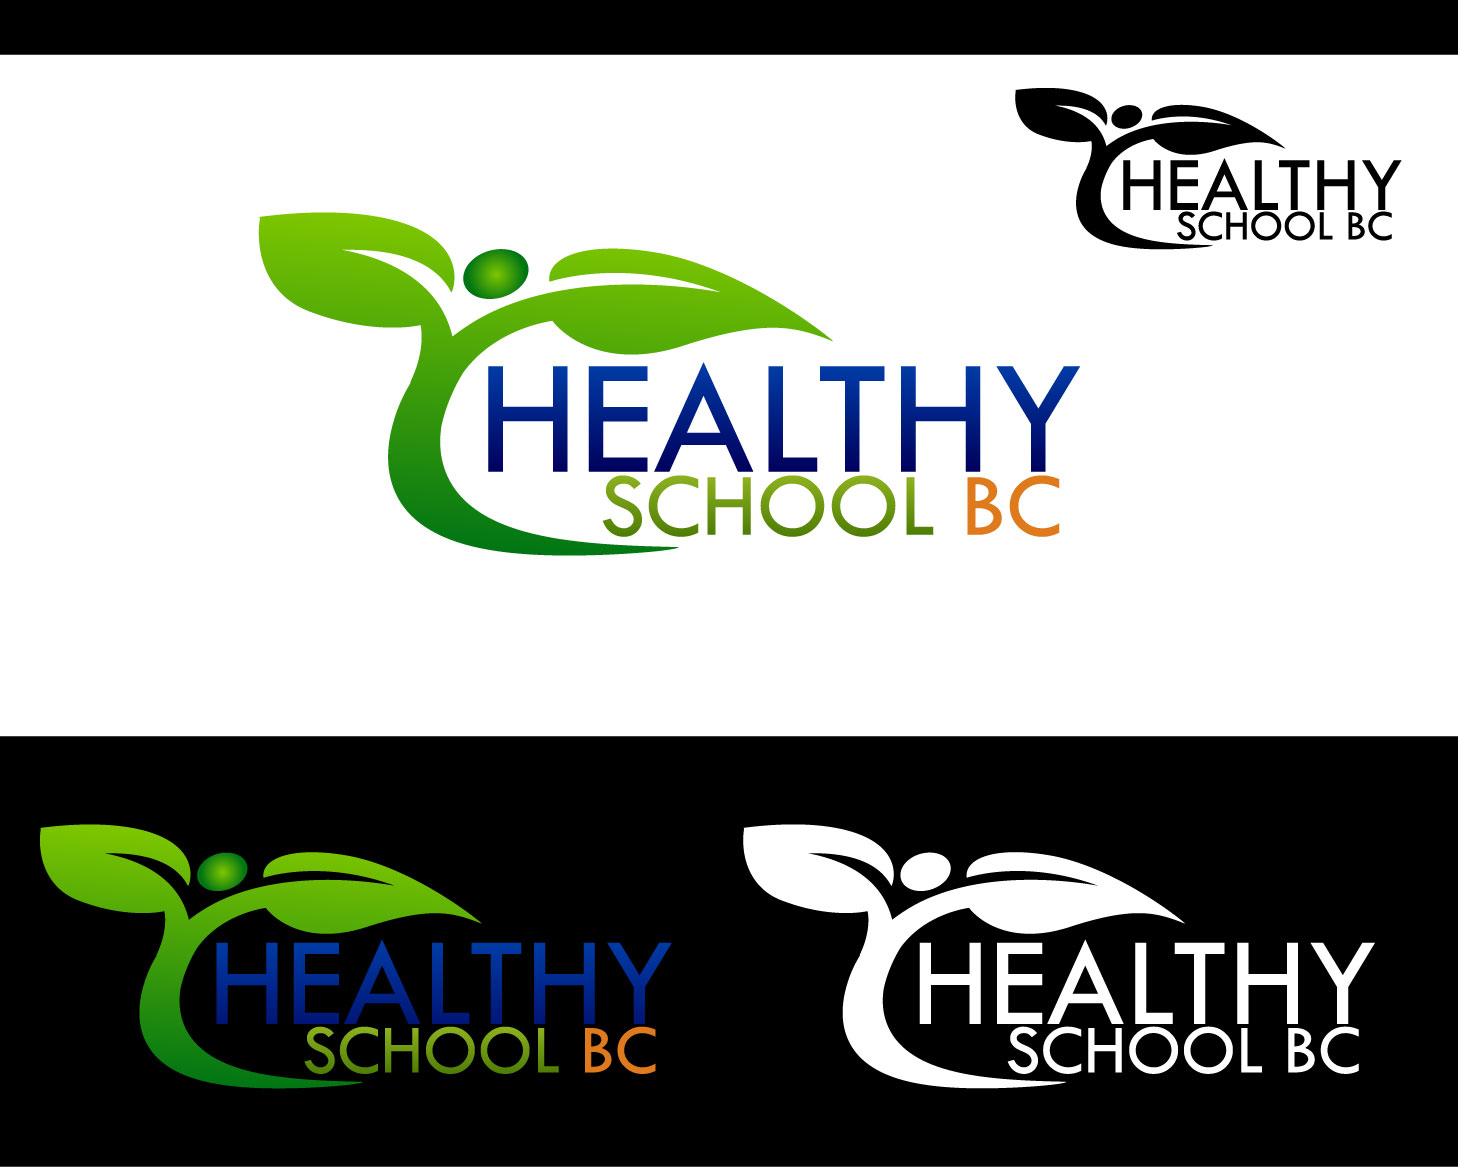 Logo Design by Private User - Entry No. 308 in the Logo Design Contest SImple, Creative and Clean Logo Design for Healthy Schools British Columbia, Canada.